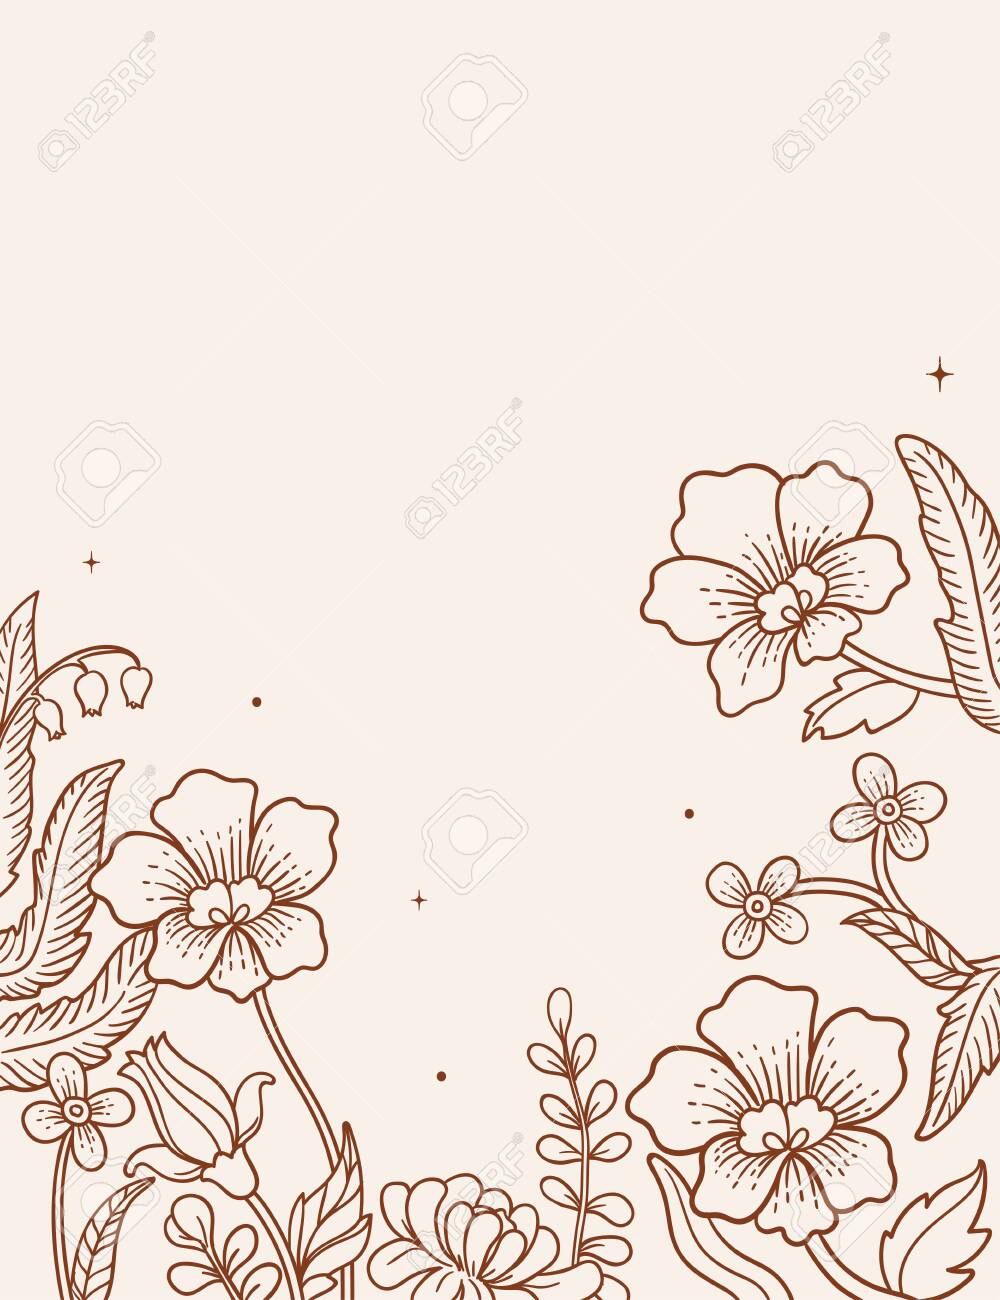 White Batik Background : white, batik, background, Drawn, Illustration, Vector, Graphic, Batik, Flower, Background, Royalty, Cliparts,, Vectors,, Stock, Illustration., Image, 141446037.